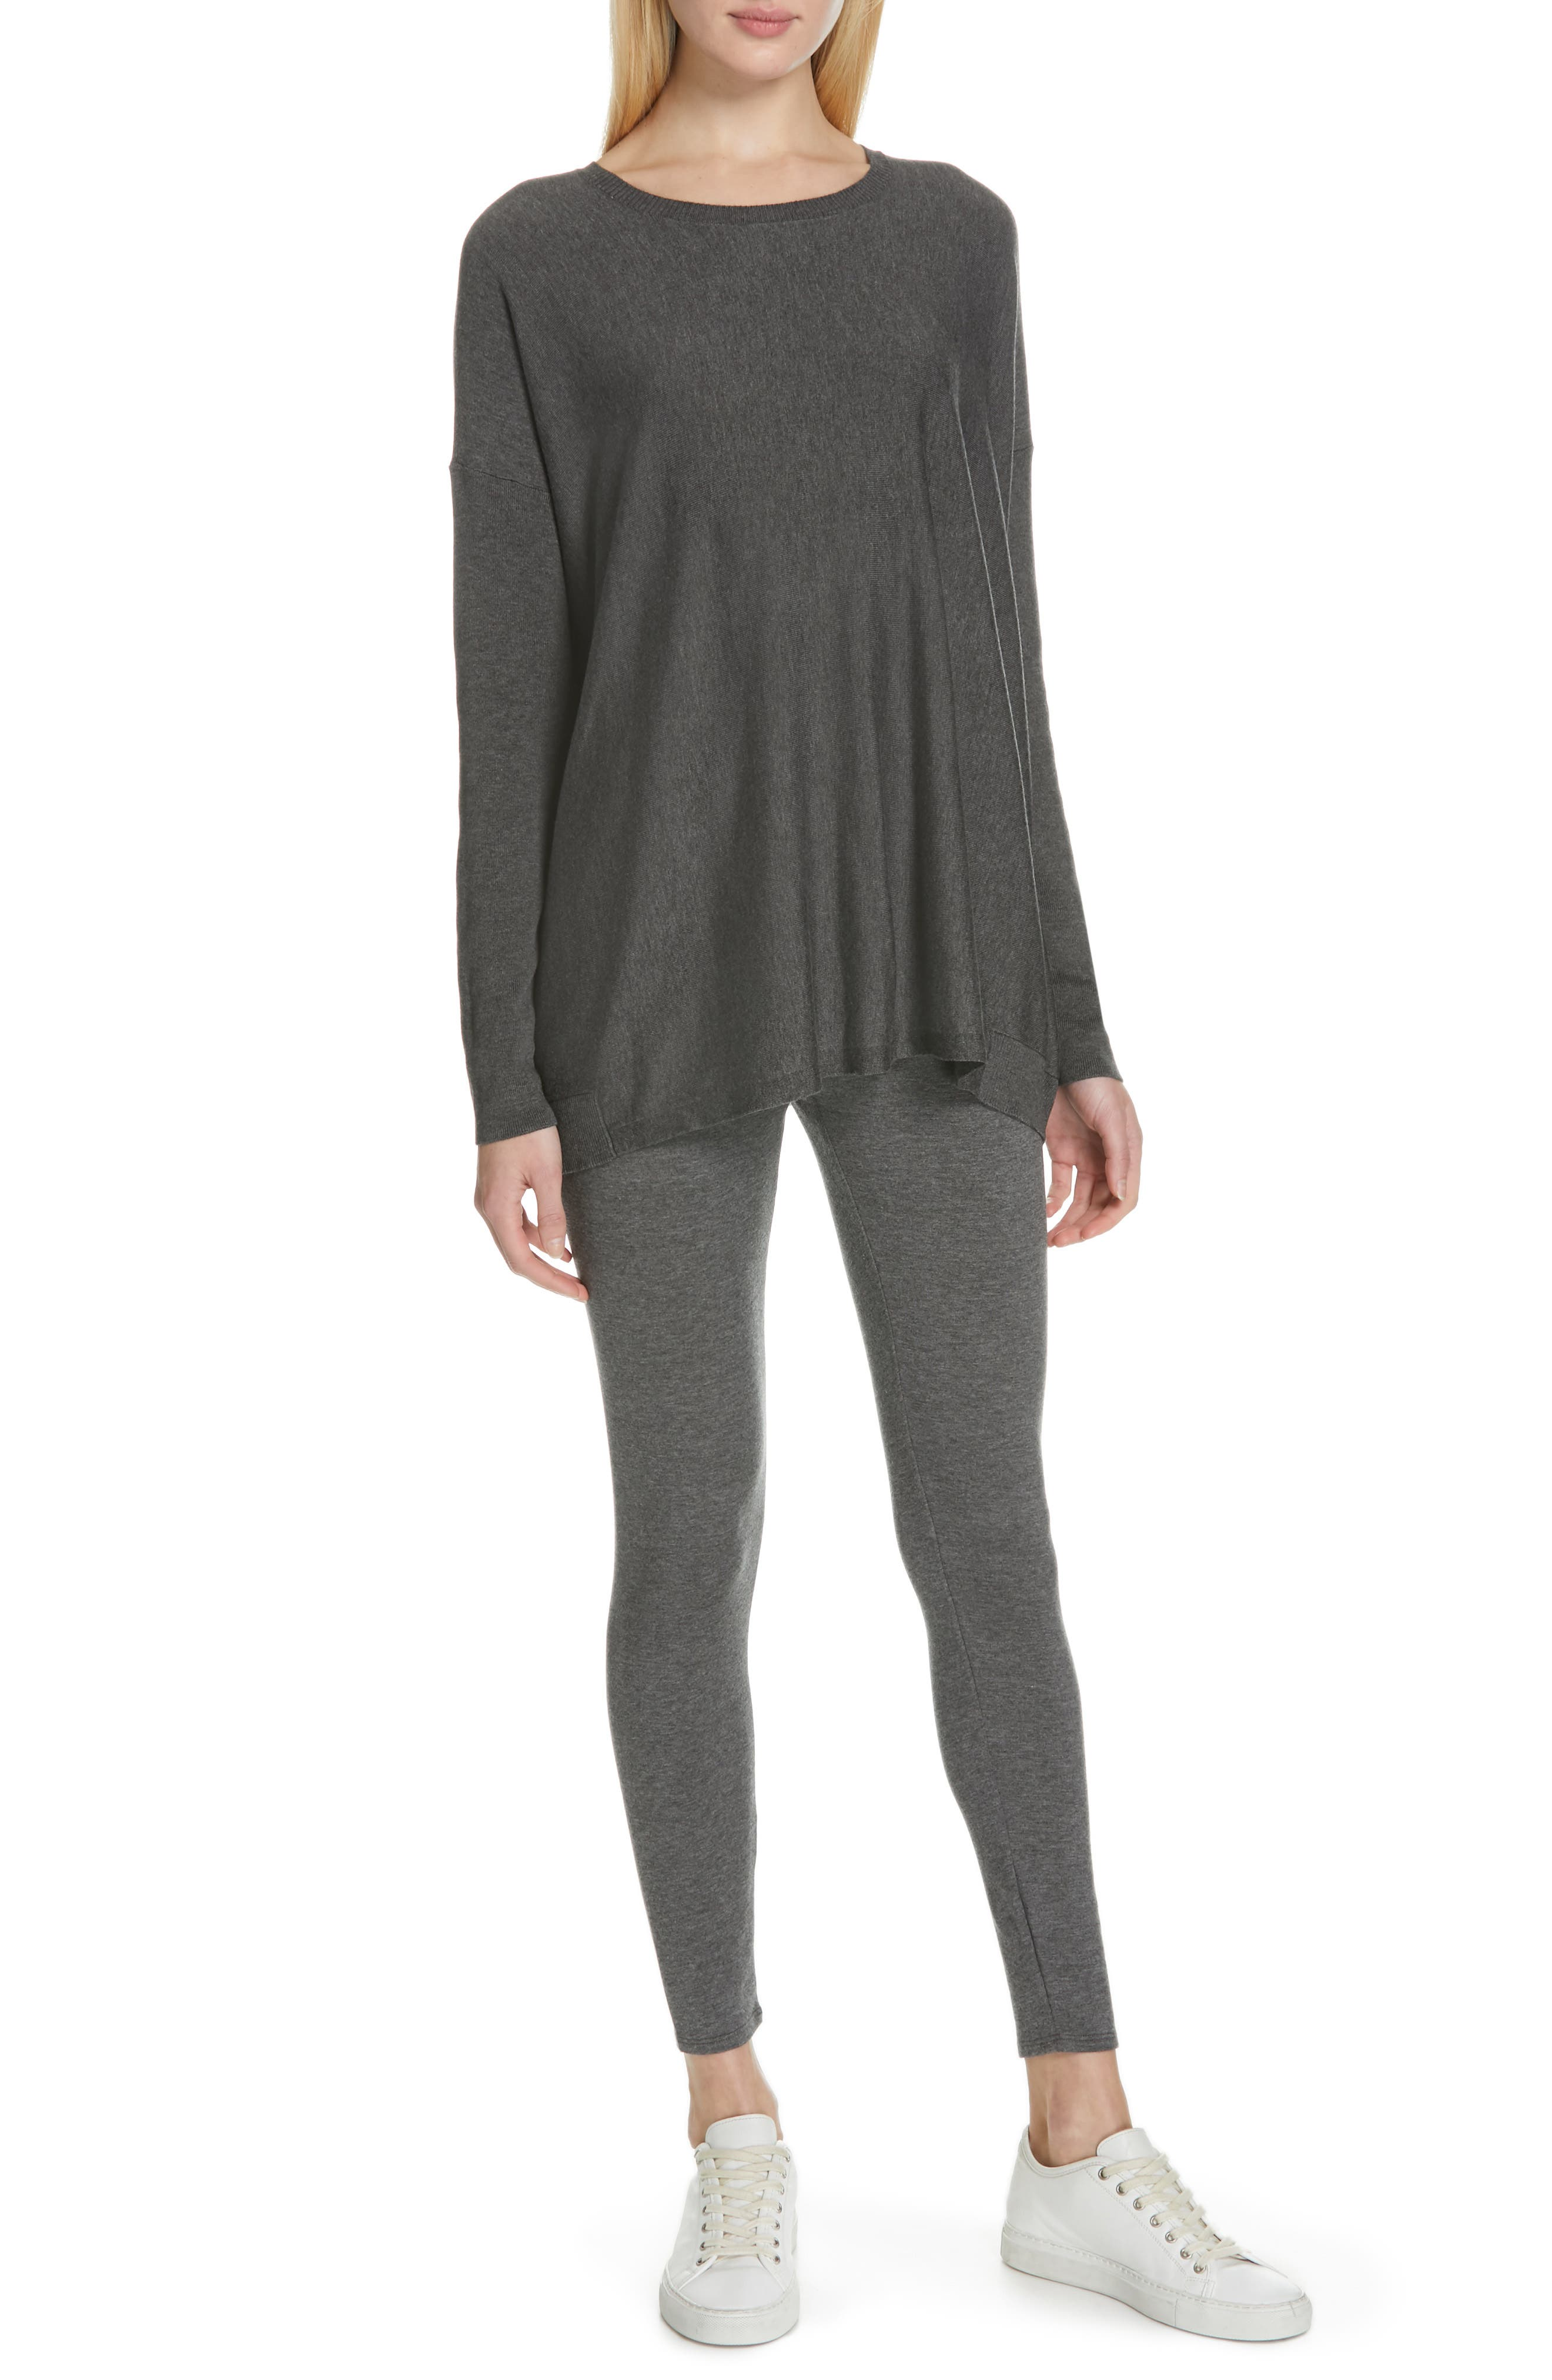 EILEEN FISHER, Tencel<sup>®</sup> Lyocell Blend Sweater, Alternate thumbnail 7, color, 030